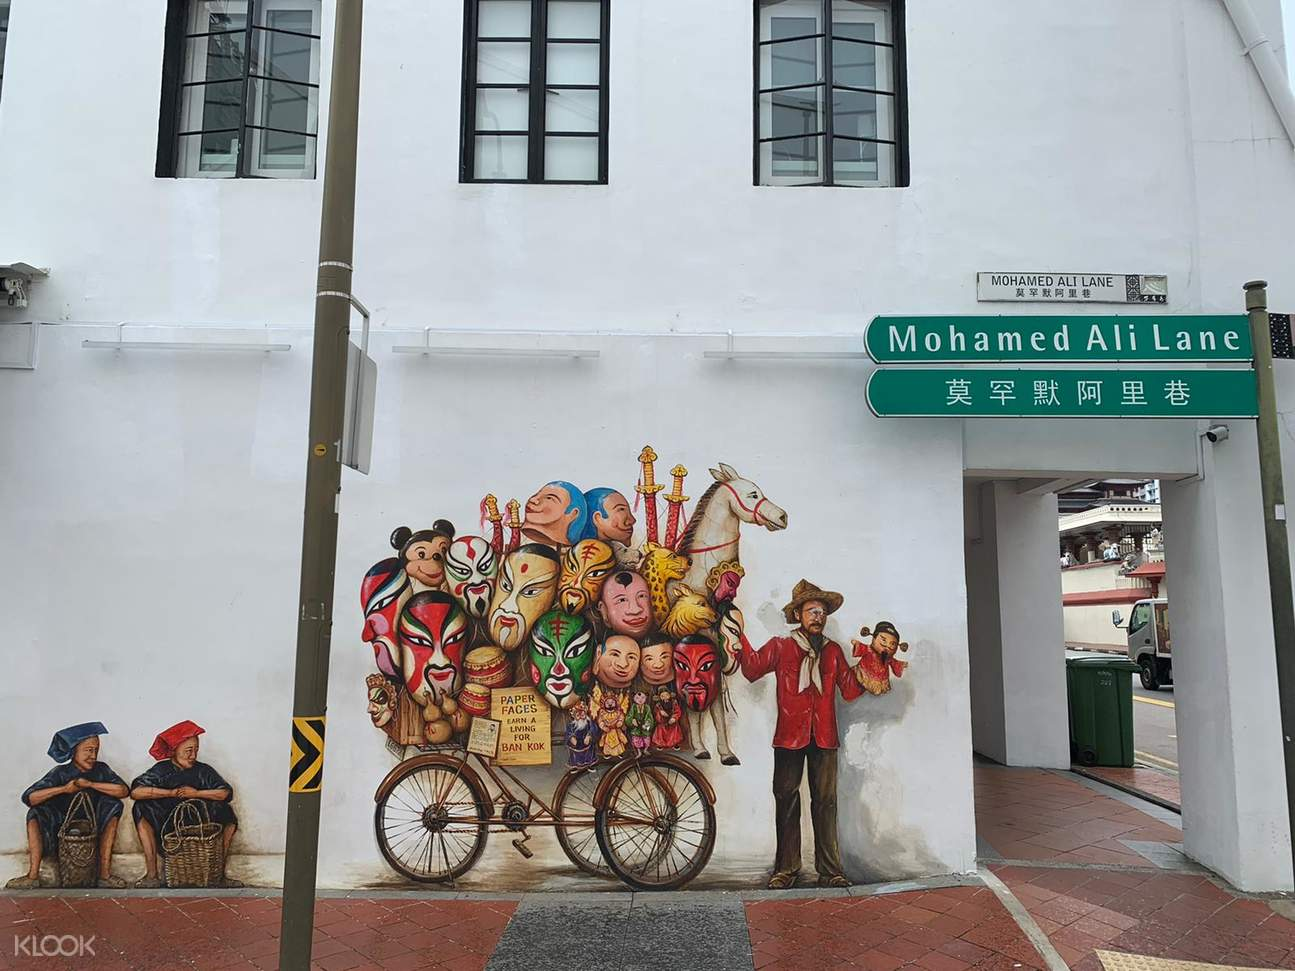 Mohamad Ali Lane is a places of old aunties and uncles selling interesting finds in Singapore